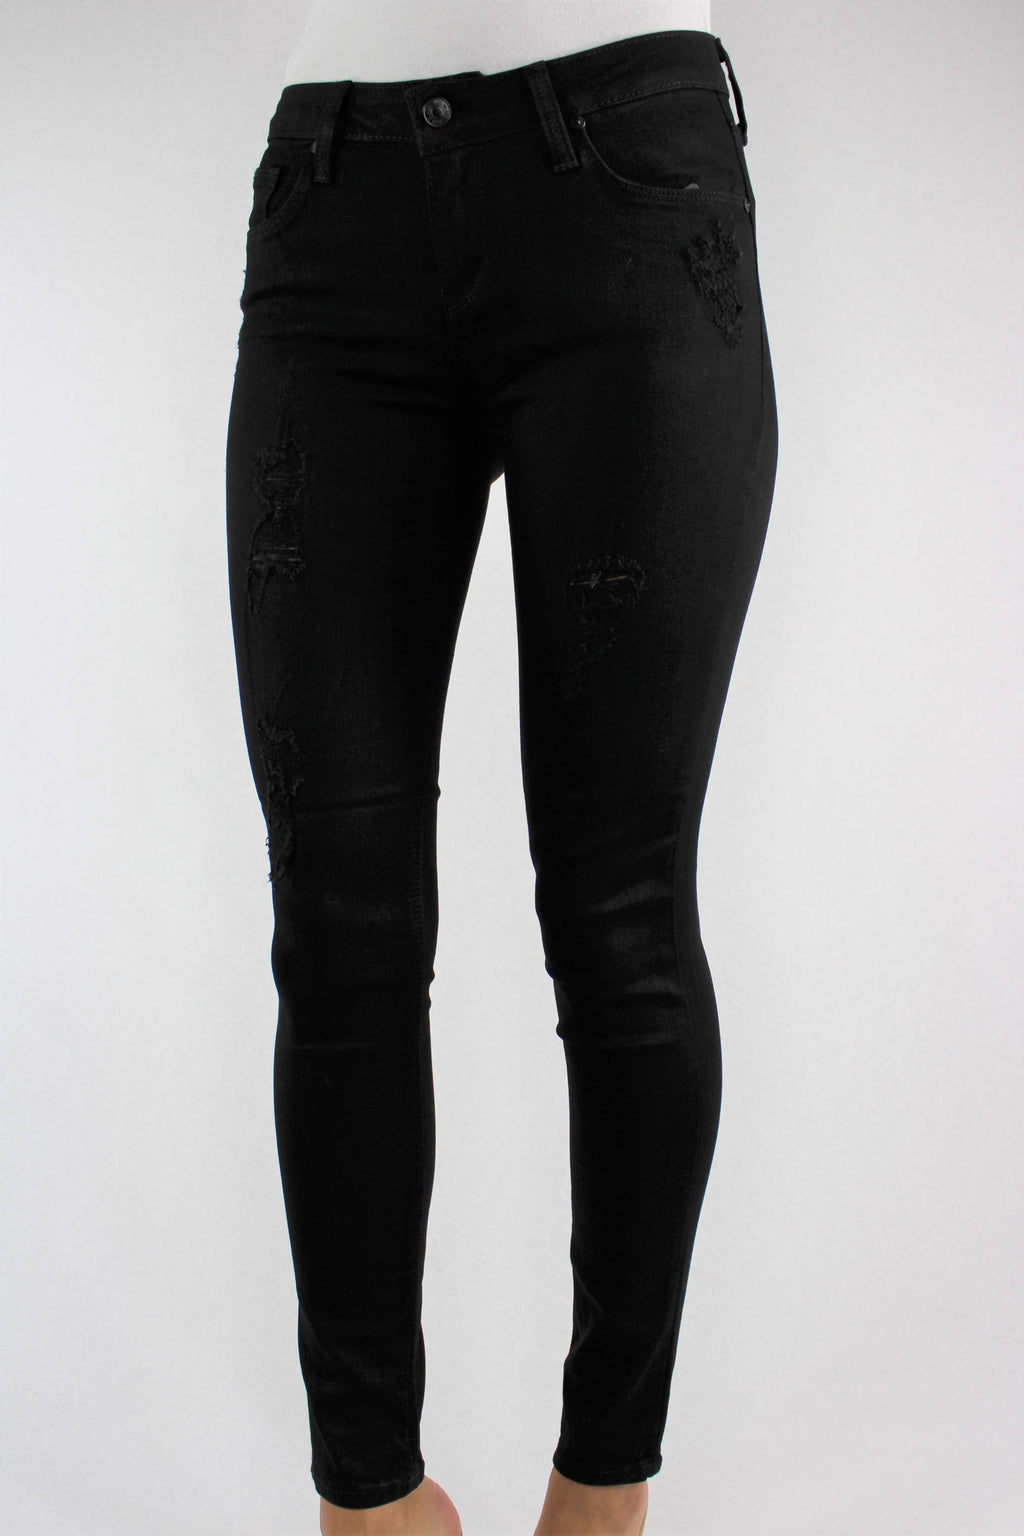 Women's Black Skinny Ripped Jeans